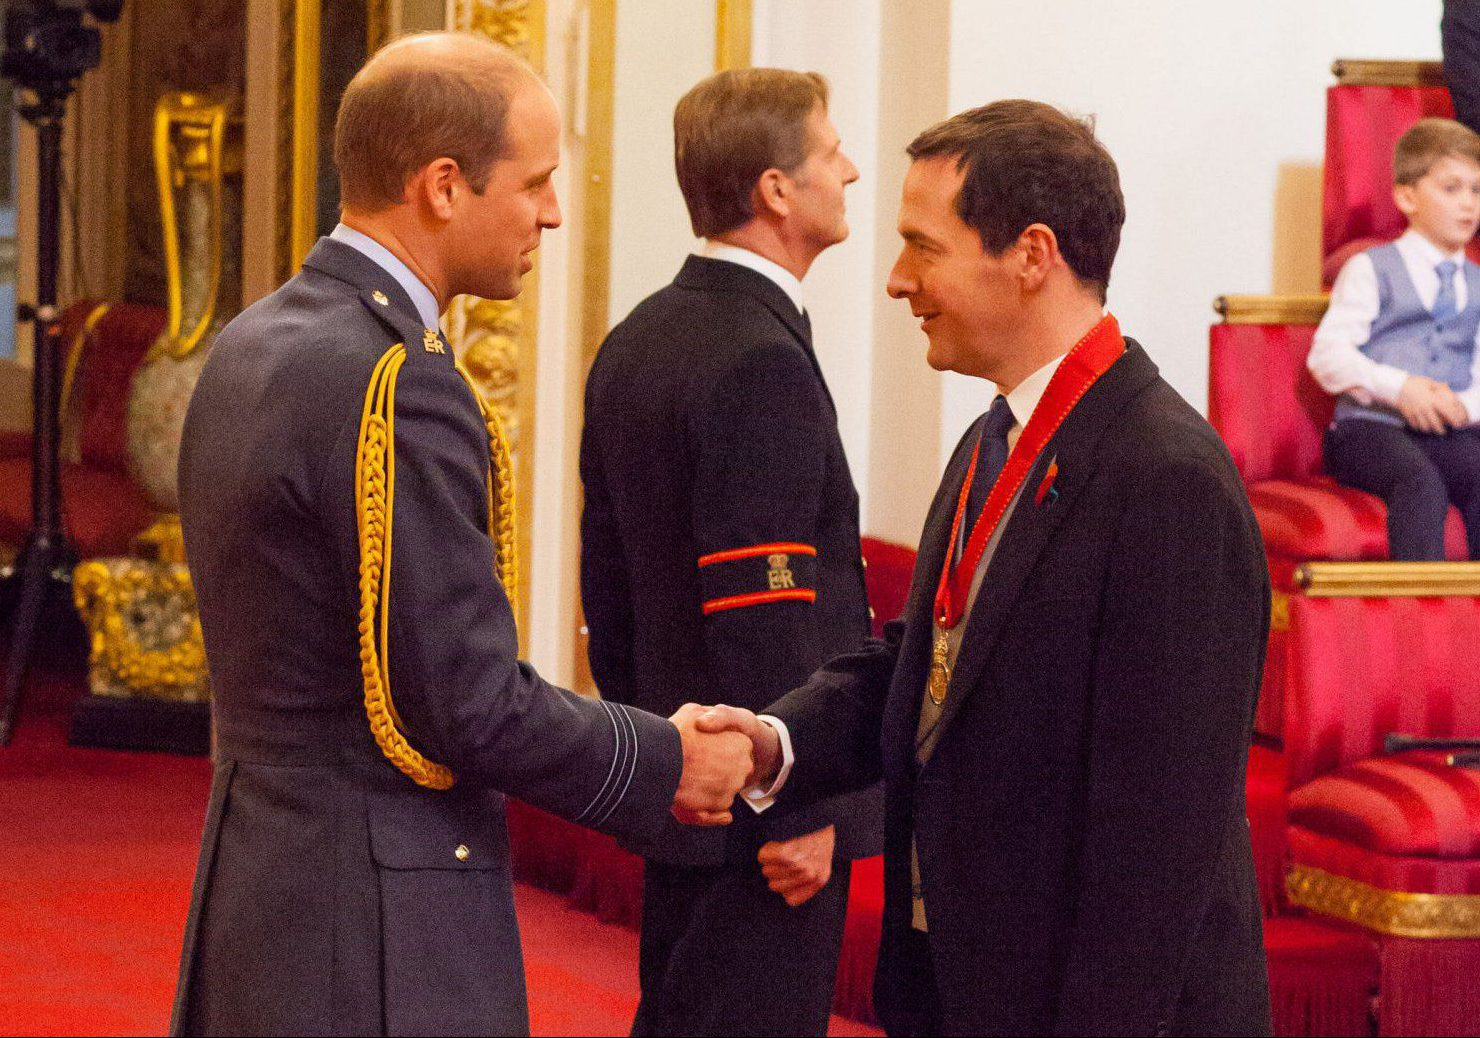 George Osborne is finally getting recognition from the Queen